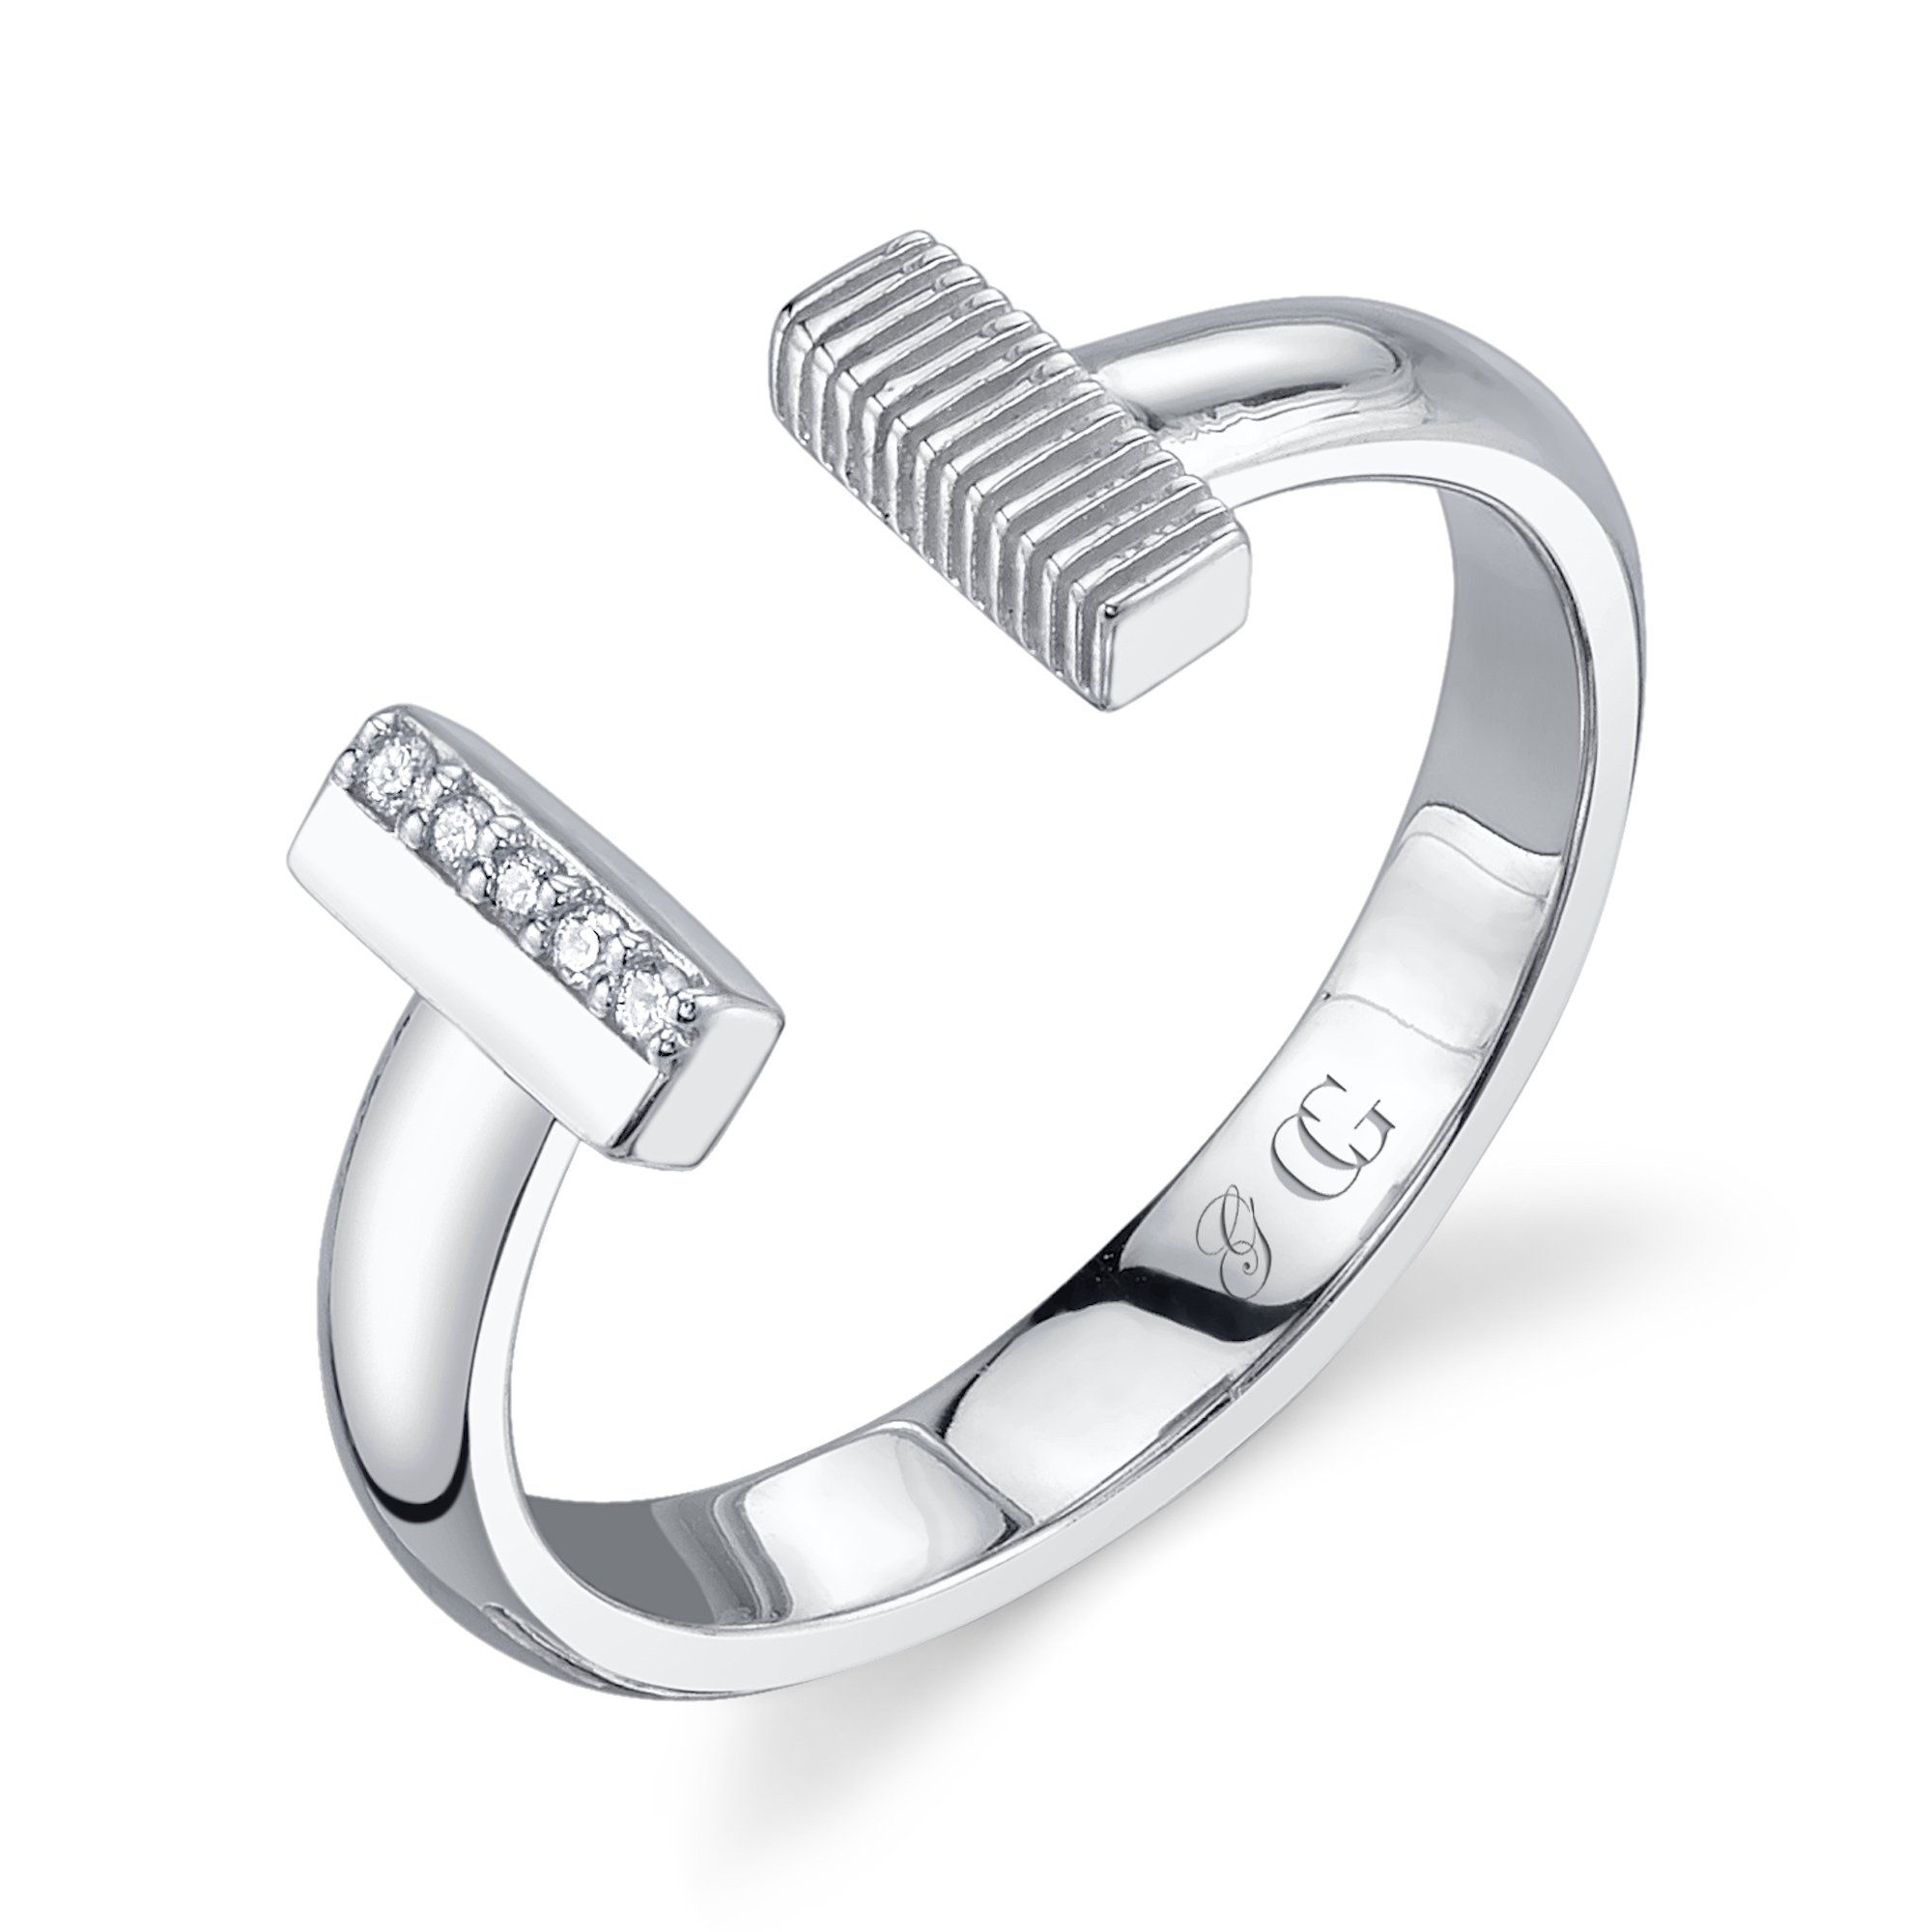 CHARLIZE GADBOIS 925 Sterling Silver Diamond Bar Ring for Women (0.025 cttw, I1-I2 Clarity), Size 8